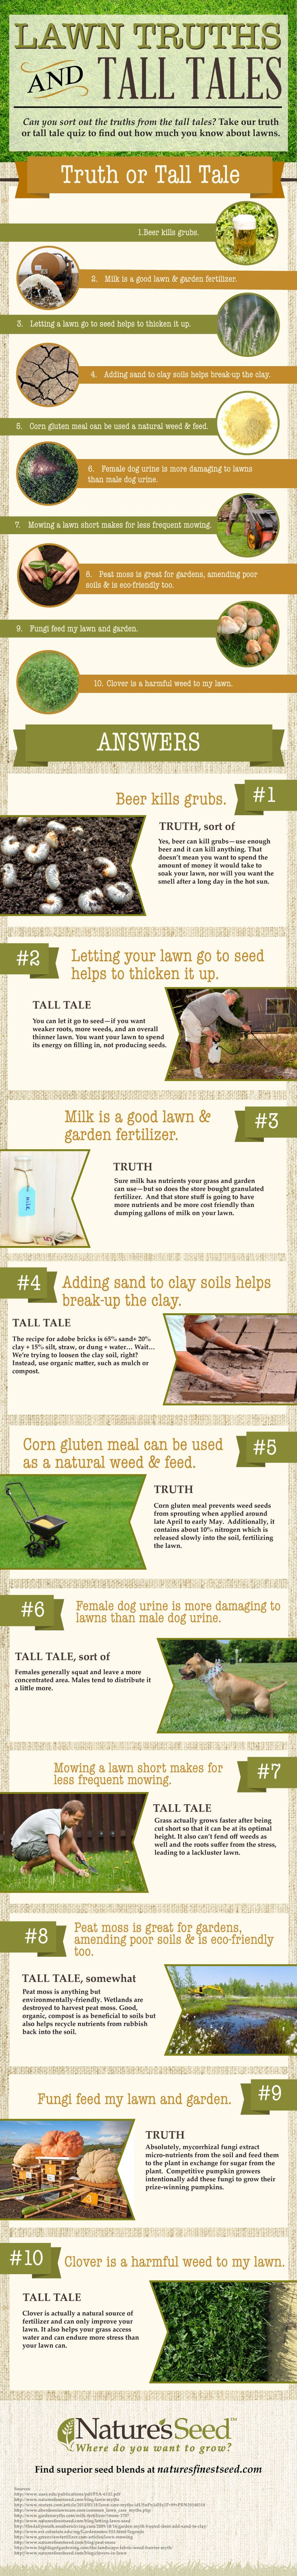 Lawn Care Truths and Tall Tales, do you know the difference? #infographic #lawncaretips